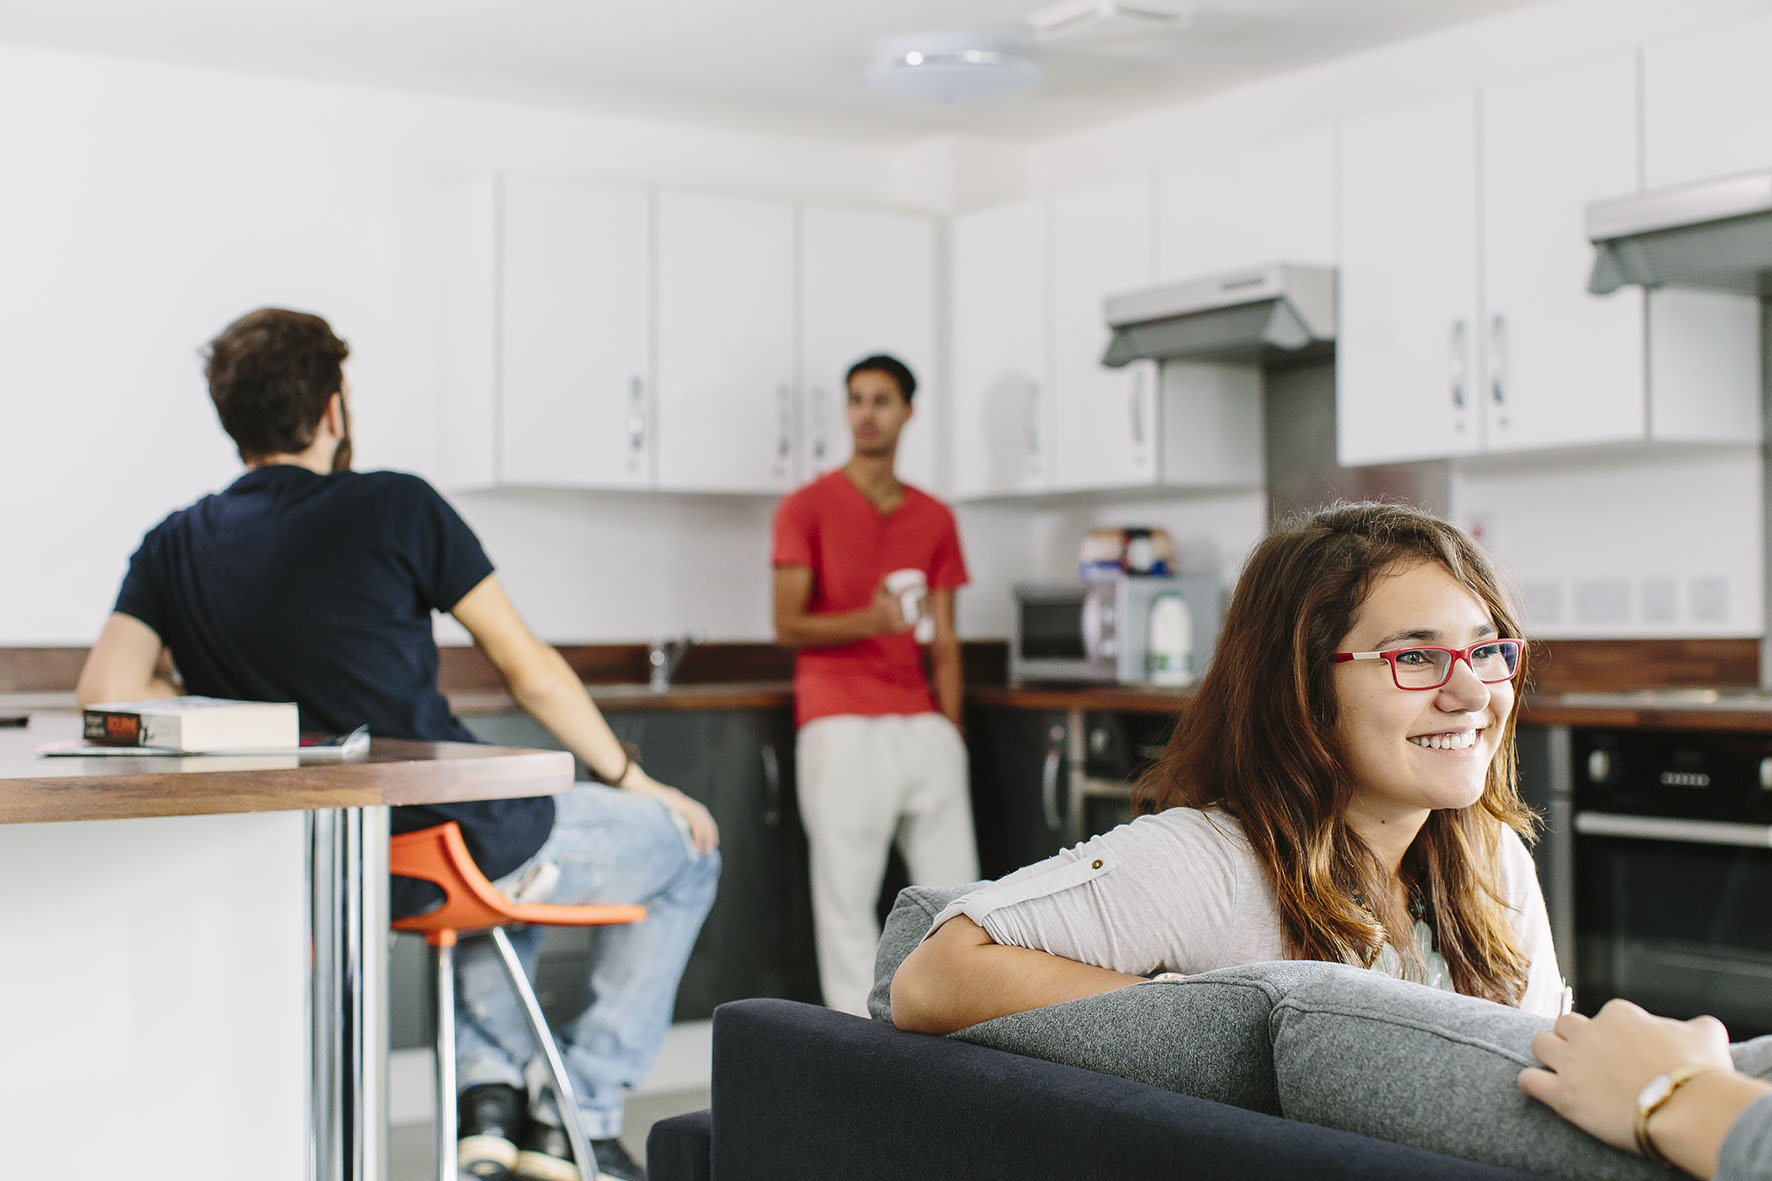 Three students in University accommodation